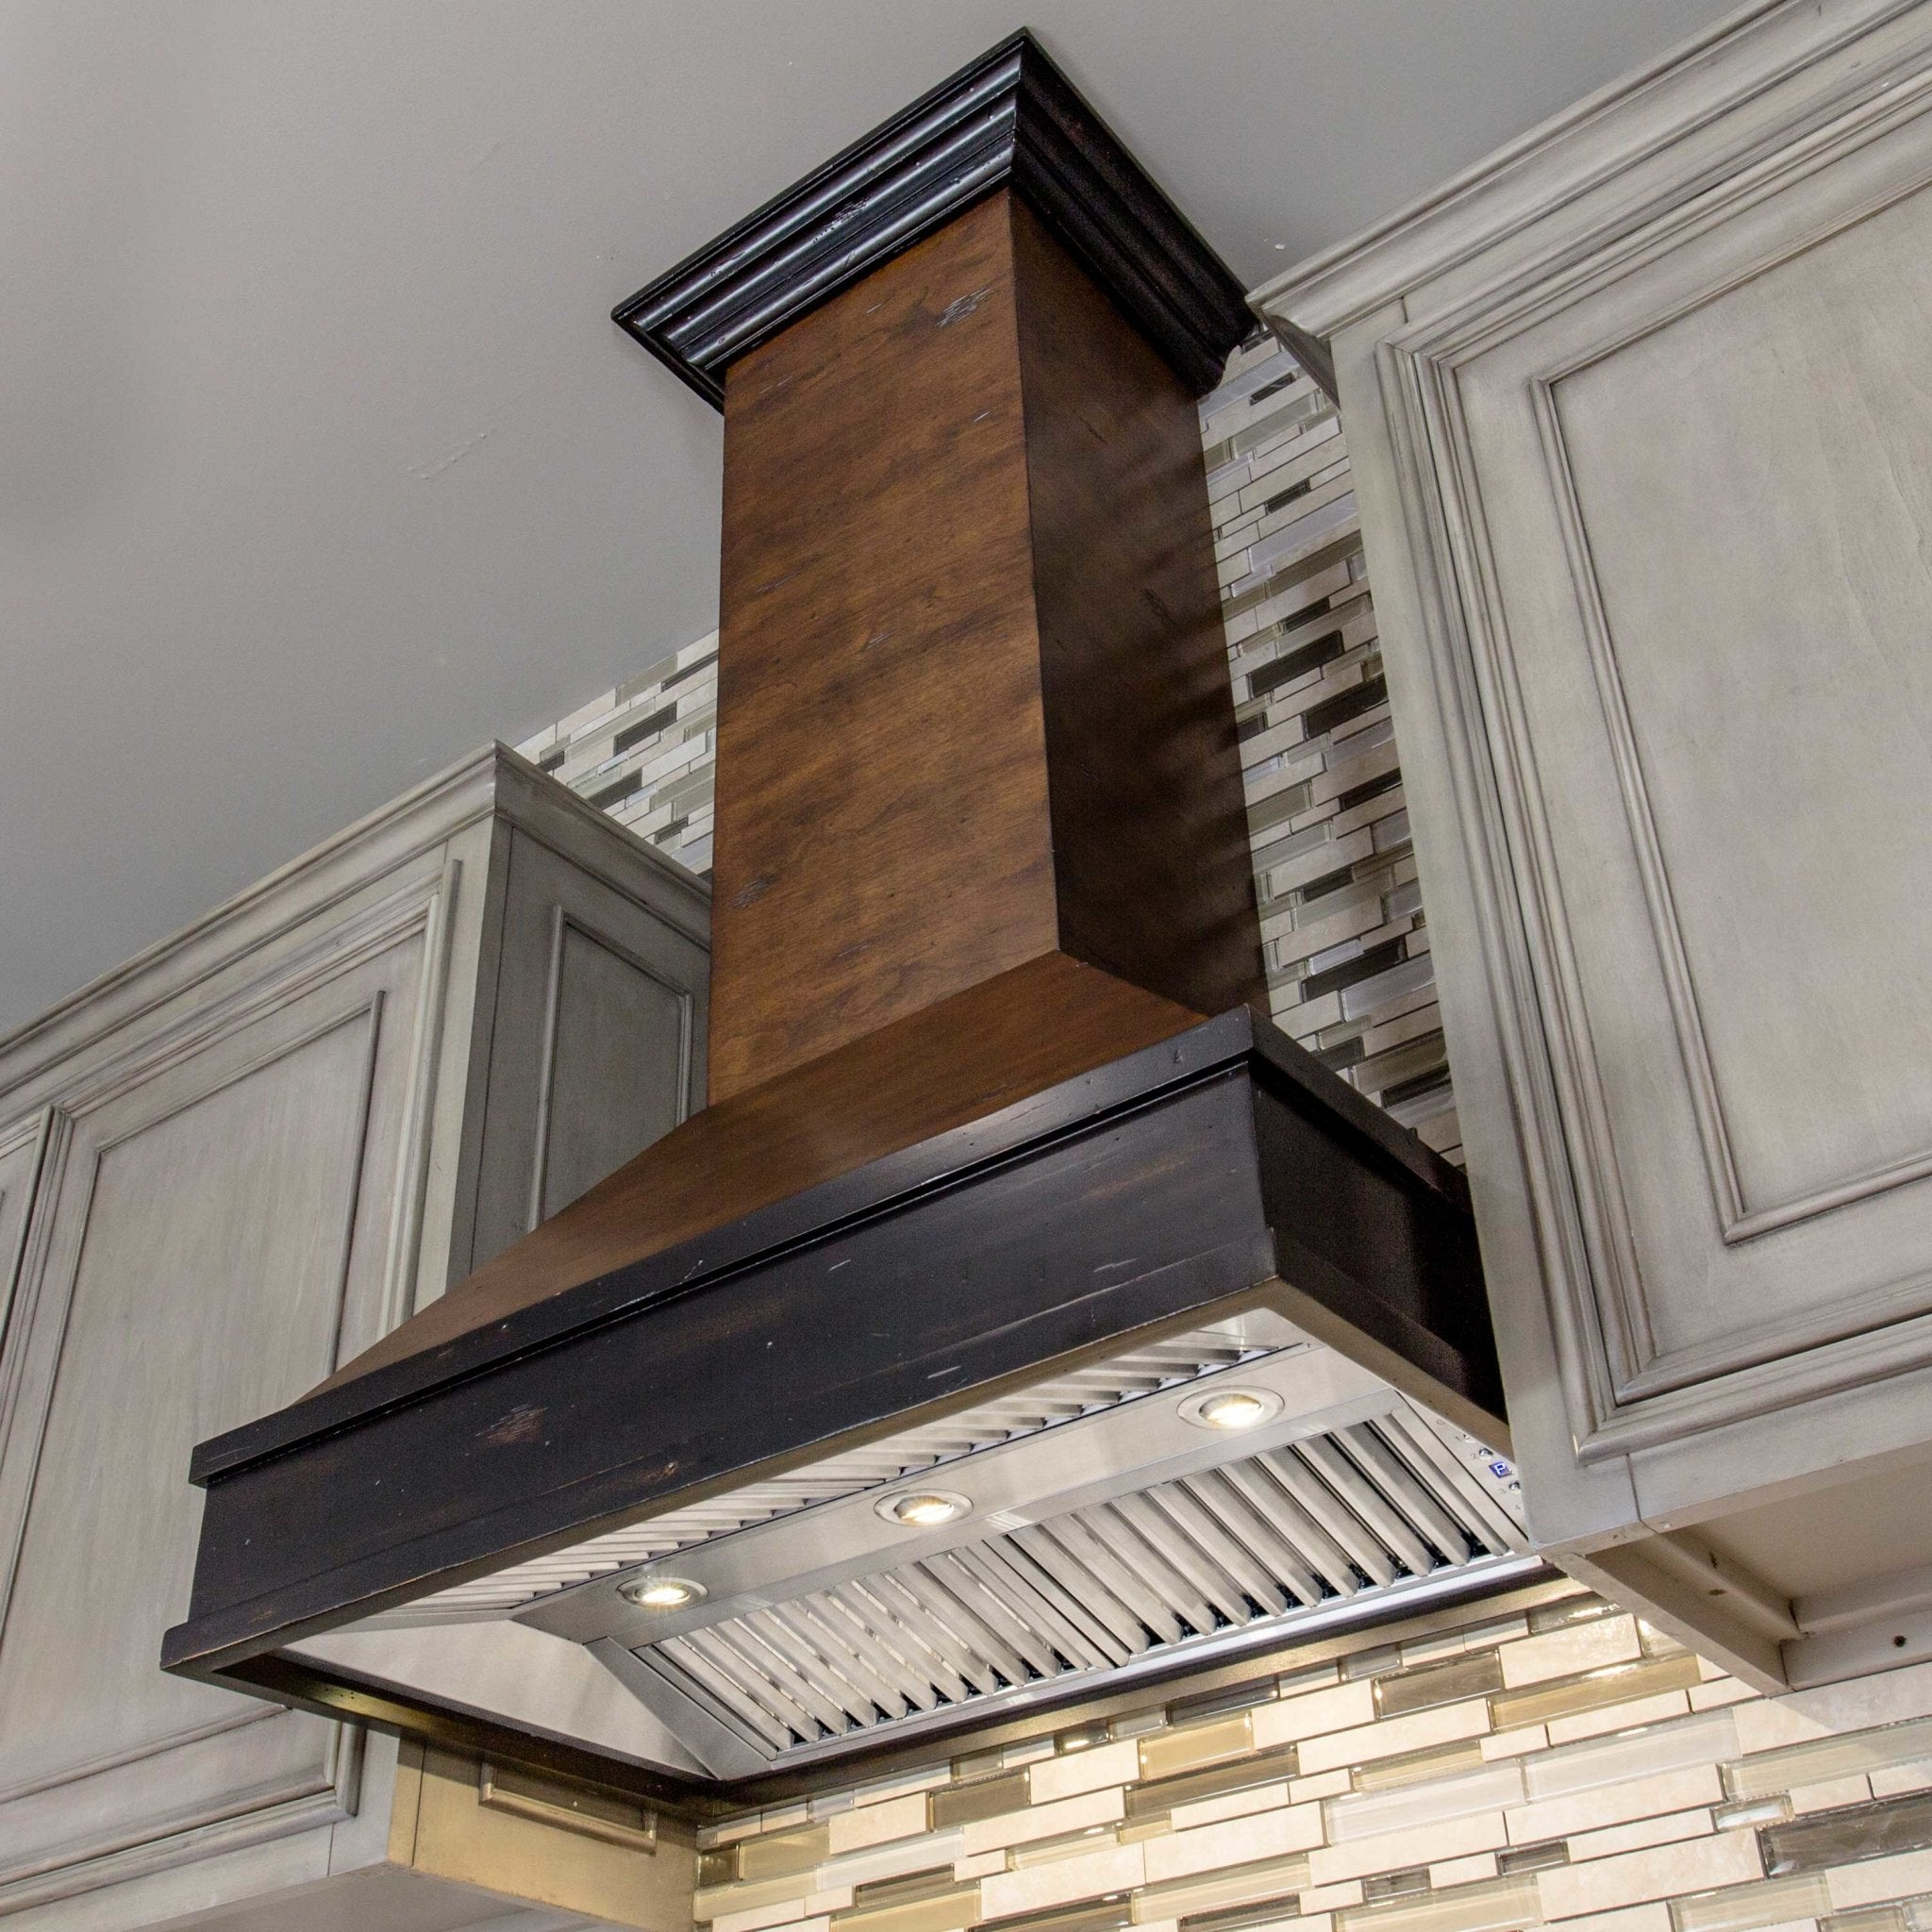 ZLINE Wooden Wall Mount Range Hood in Antigua and Hamilton - Includes Motor (329AH)